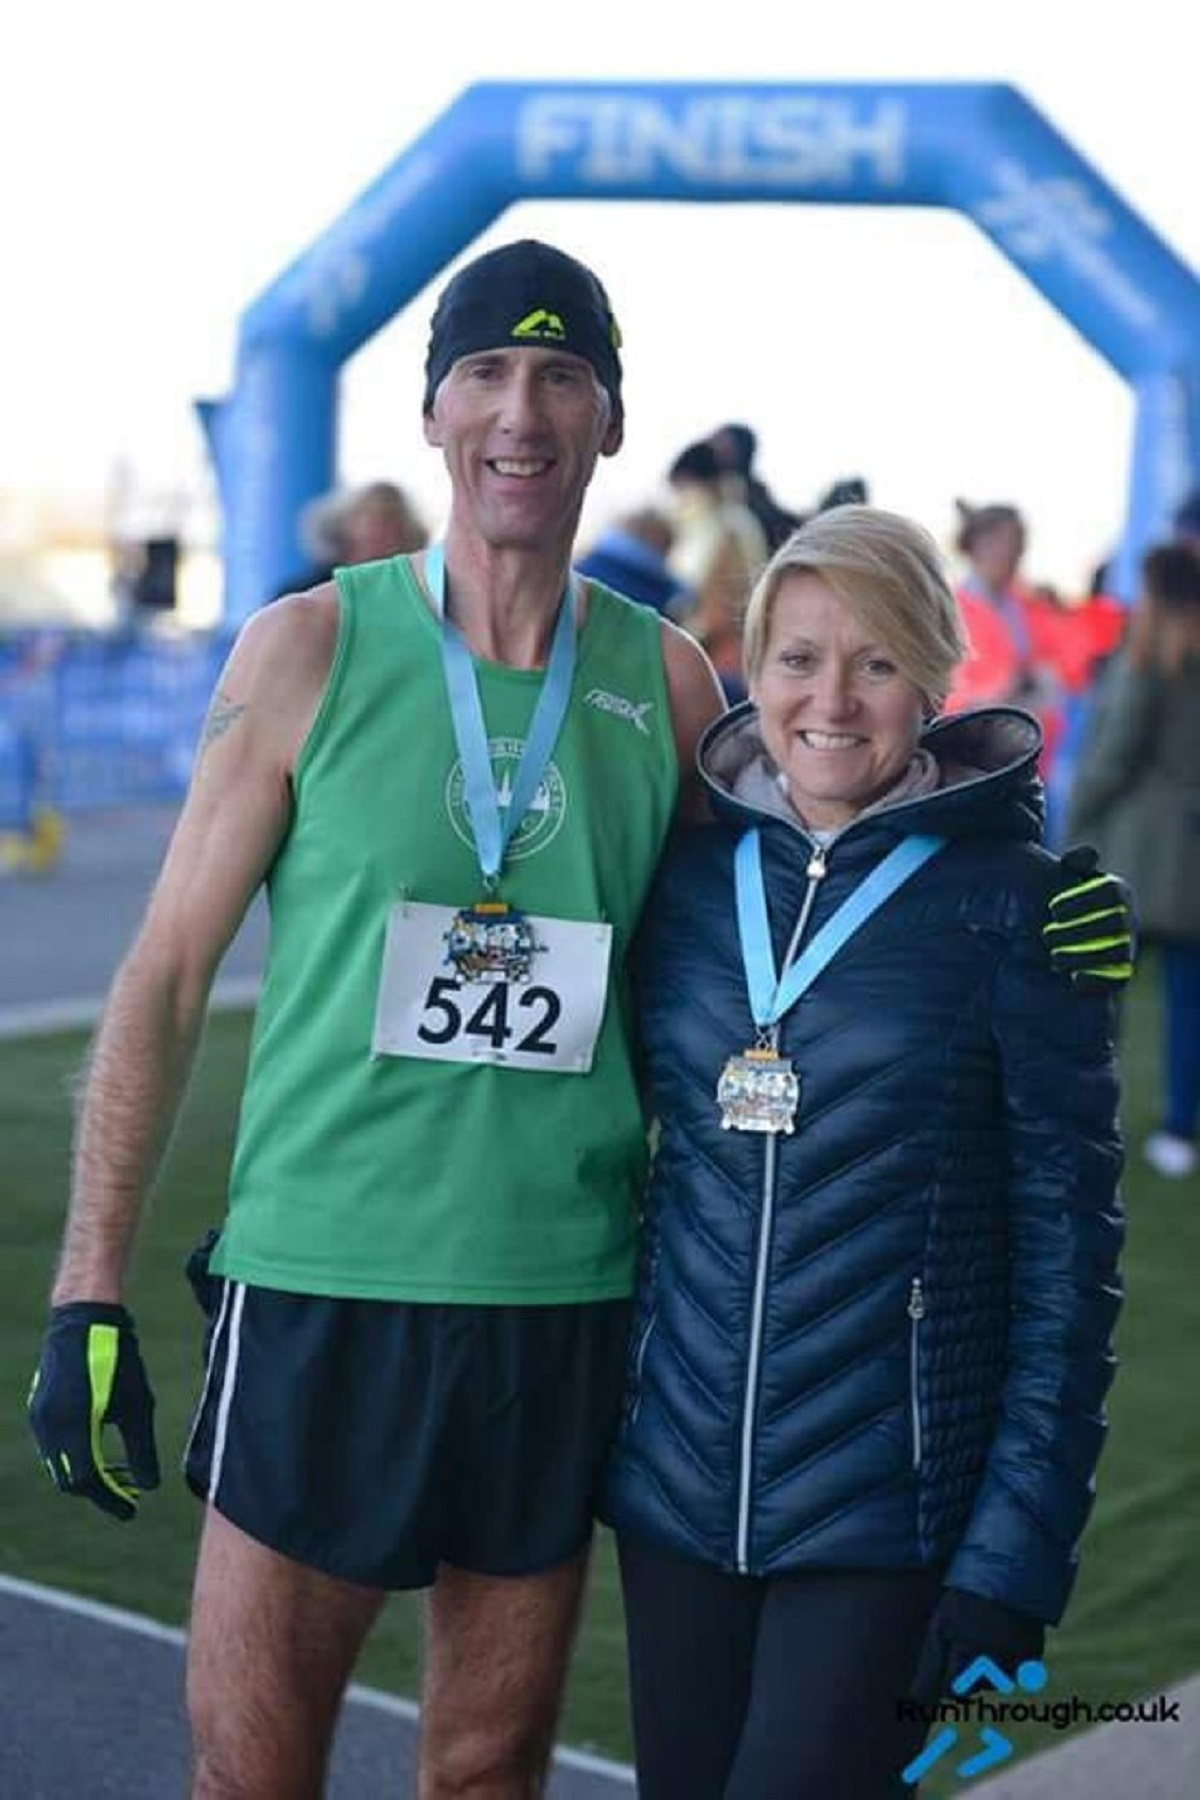 Fun in the Park - Colchester Harriers duo Richard Flutter and Debbie Cattermole who had great results at the Olympic Park